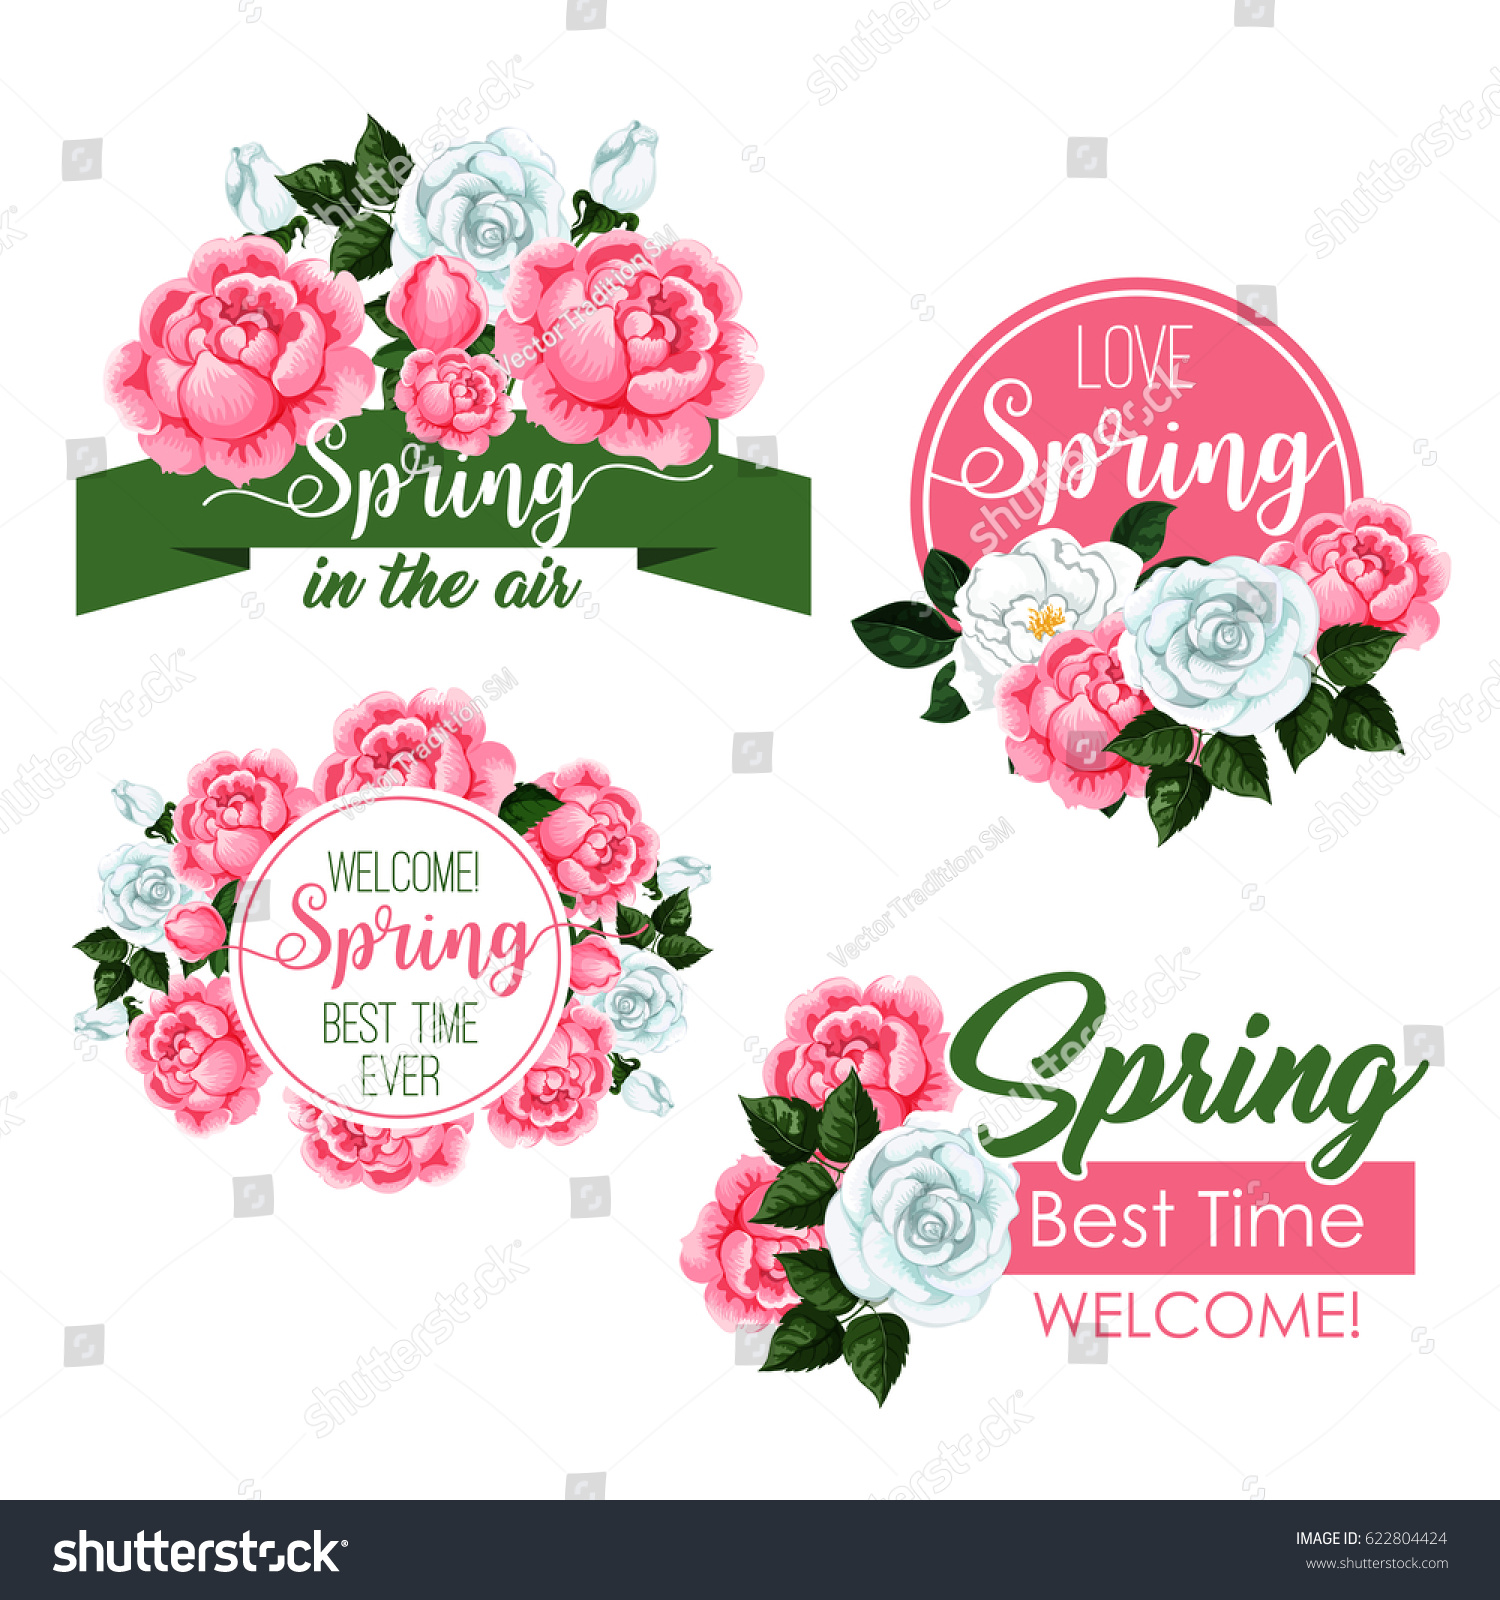 Springtime Quotes Flowers Design Vector Greeting Stock Vector